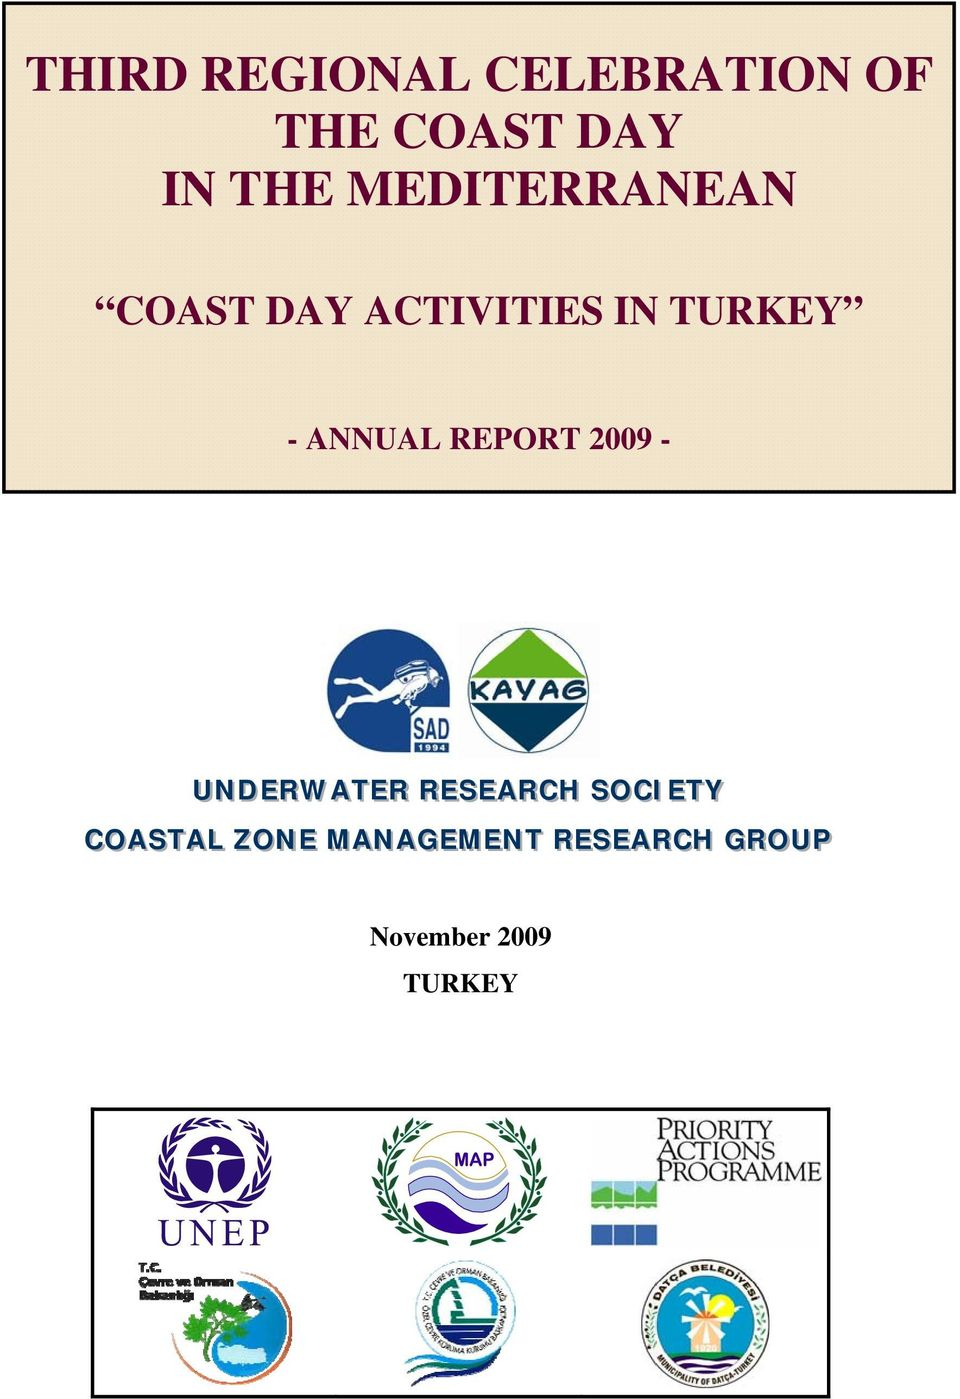 ANNUAL REPORT 2009 - UNDERWATER RESEARCH SOCIIETY